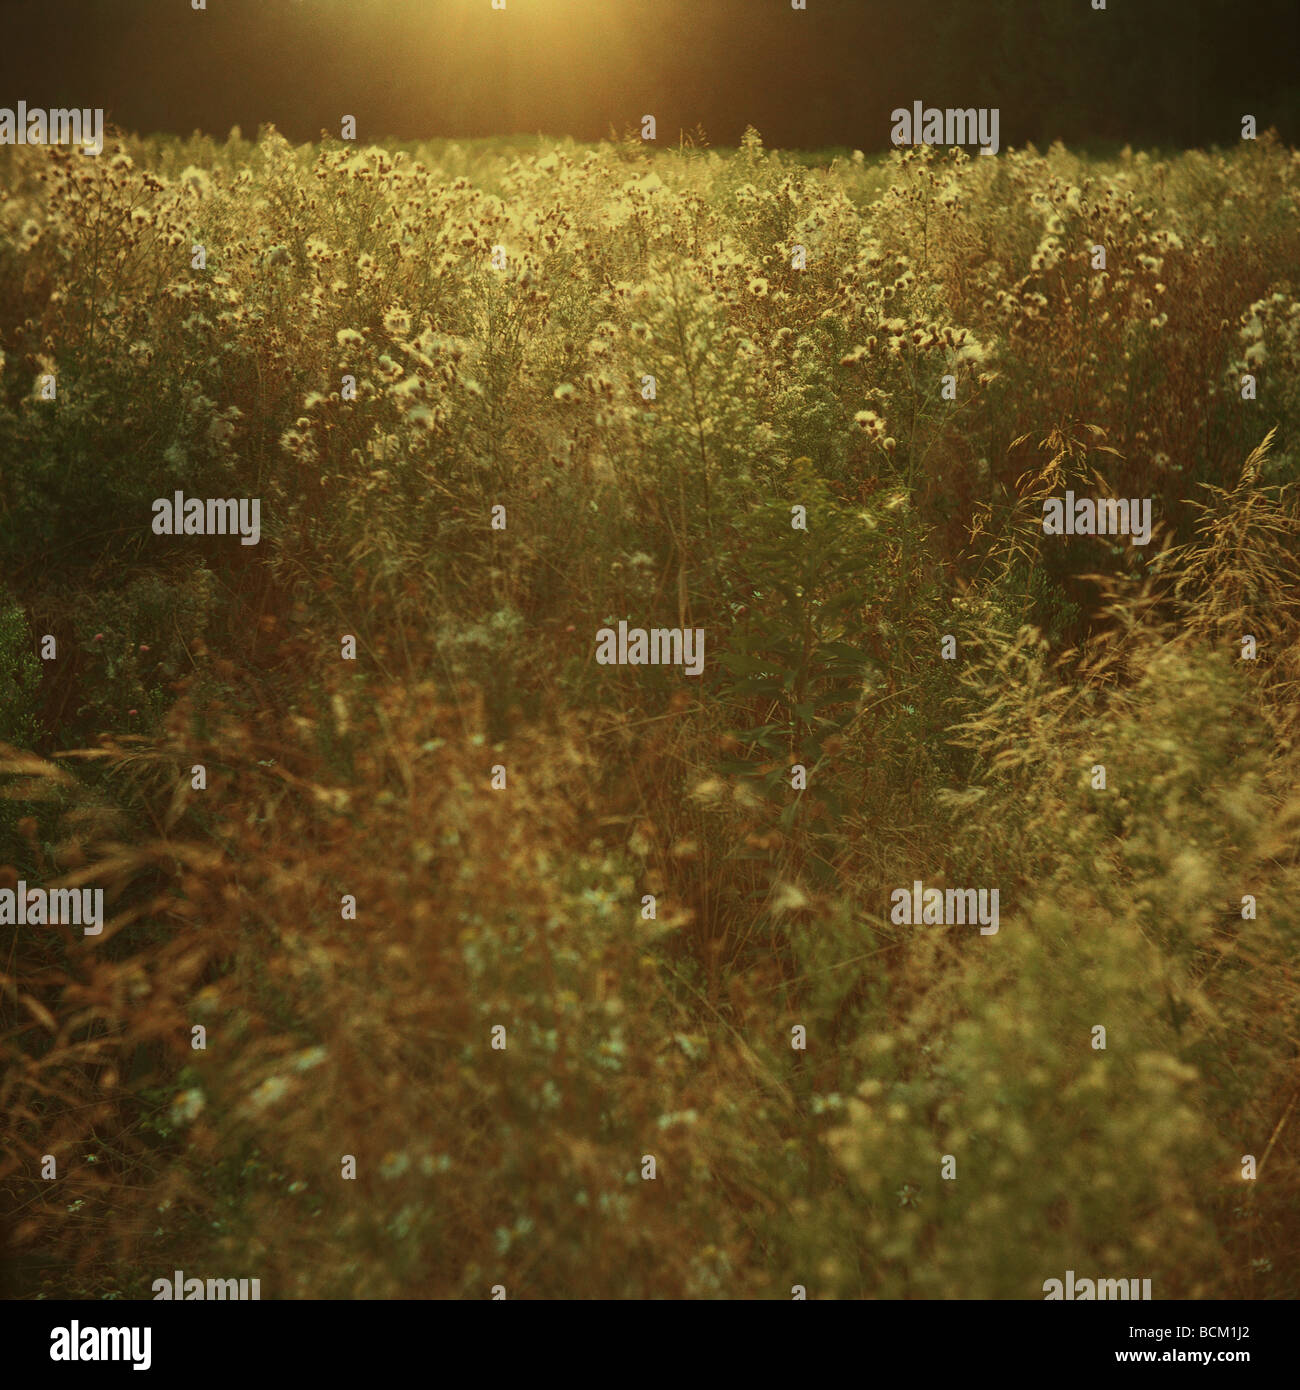 Field with high vegetation - Stock Image